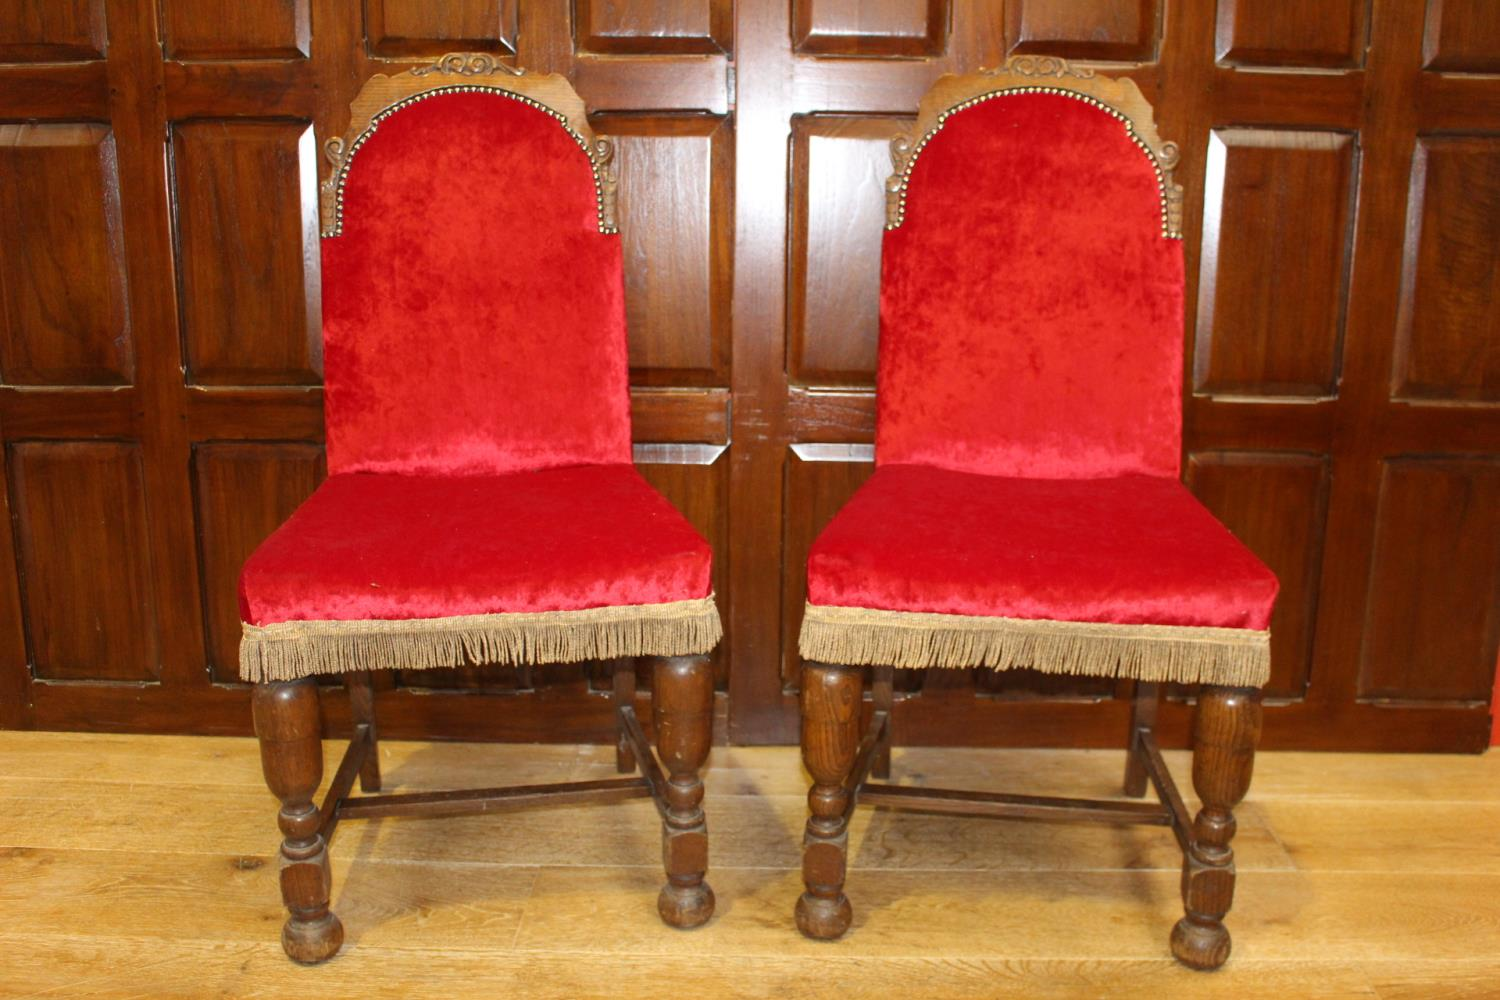 Pair of late 19th C. upholstered side chairs.